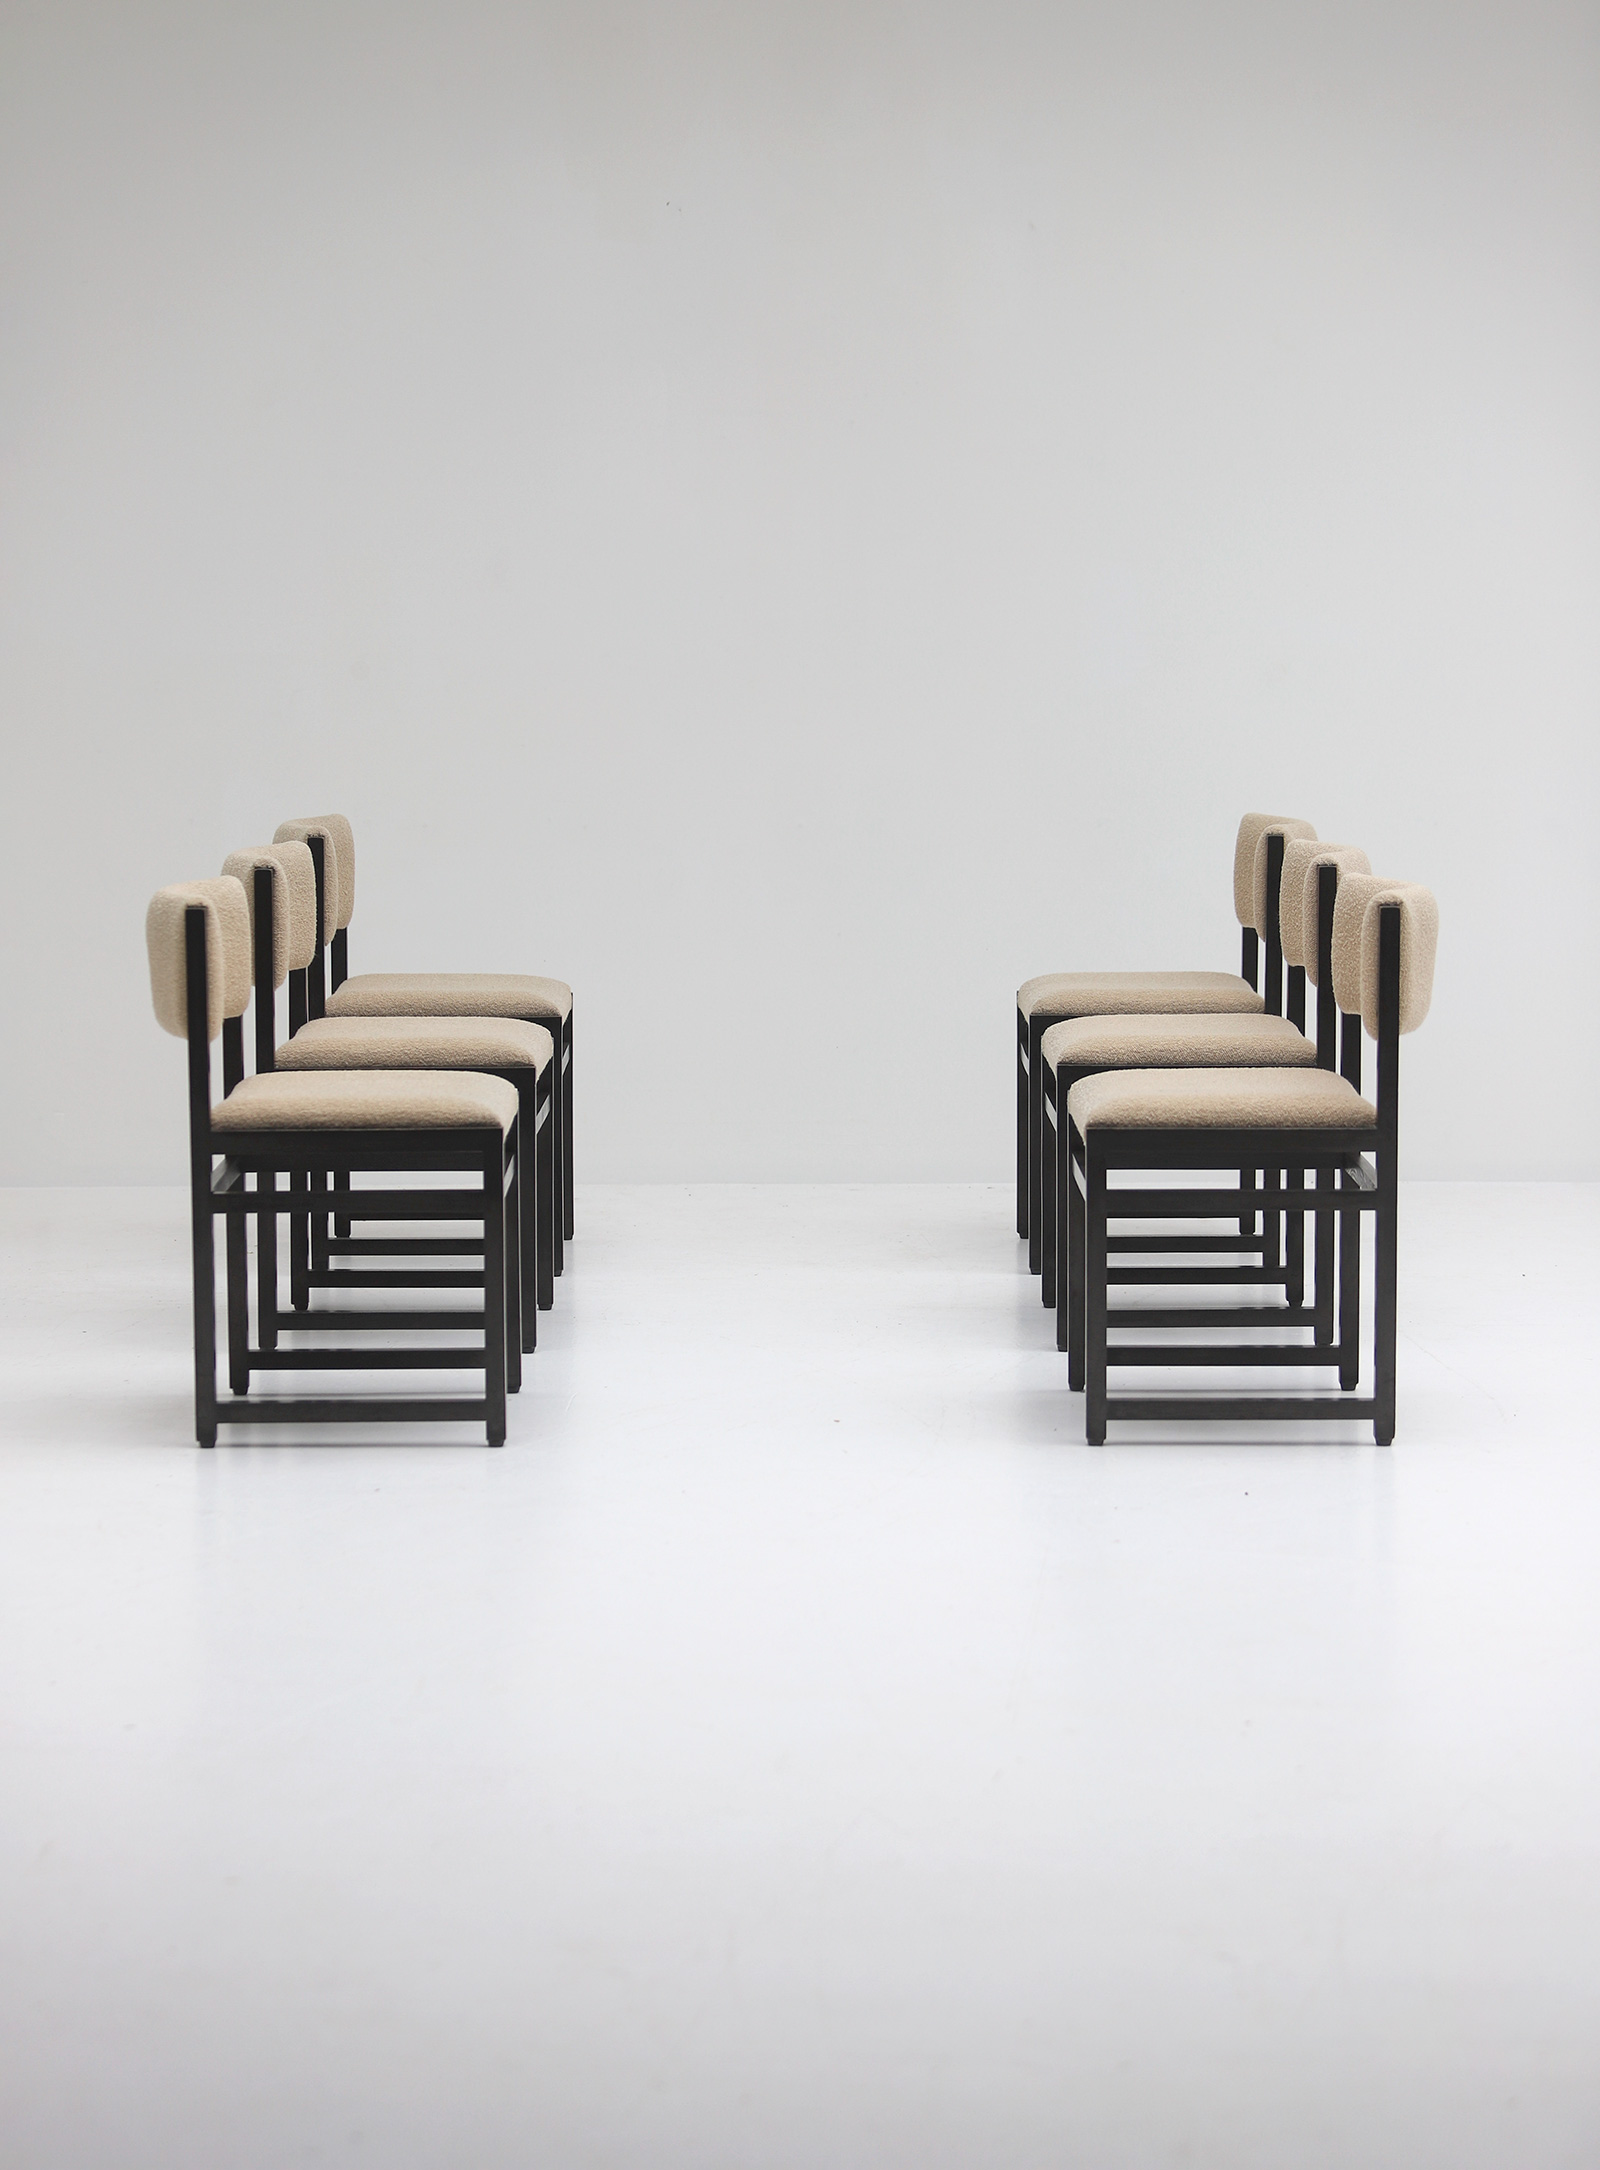 Six Black Stained Oak Chairs with Bouclé Upholsteryimage 1